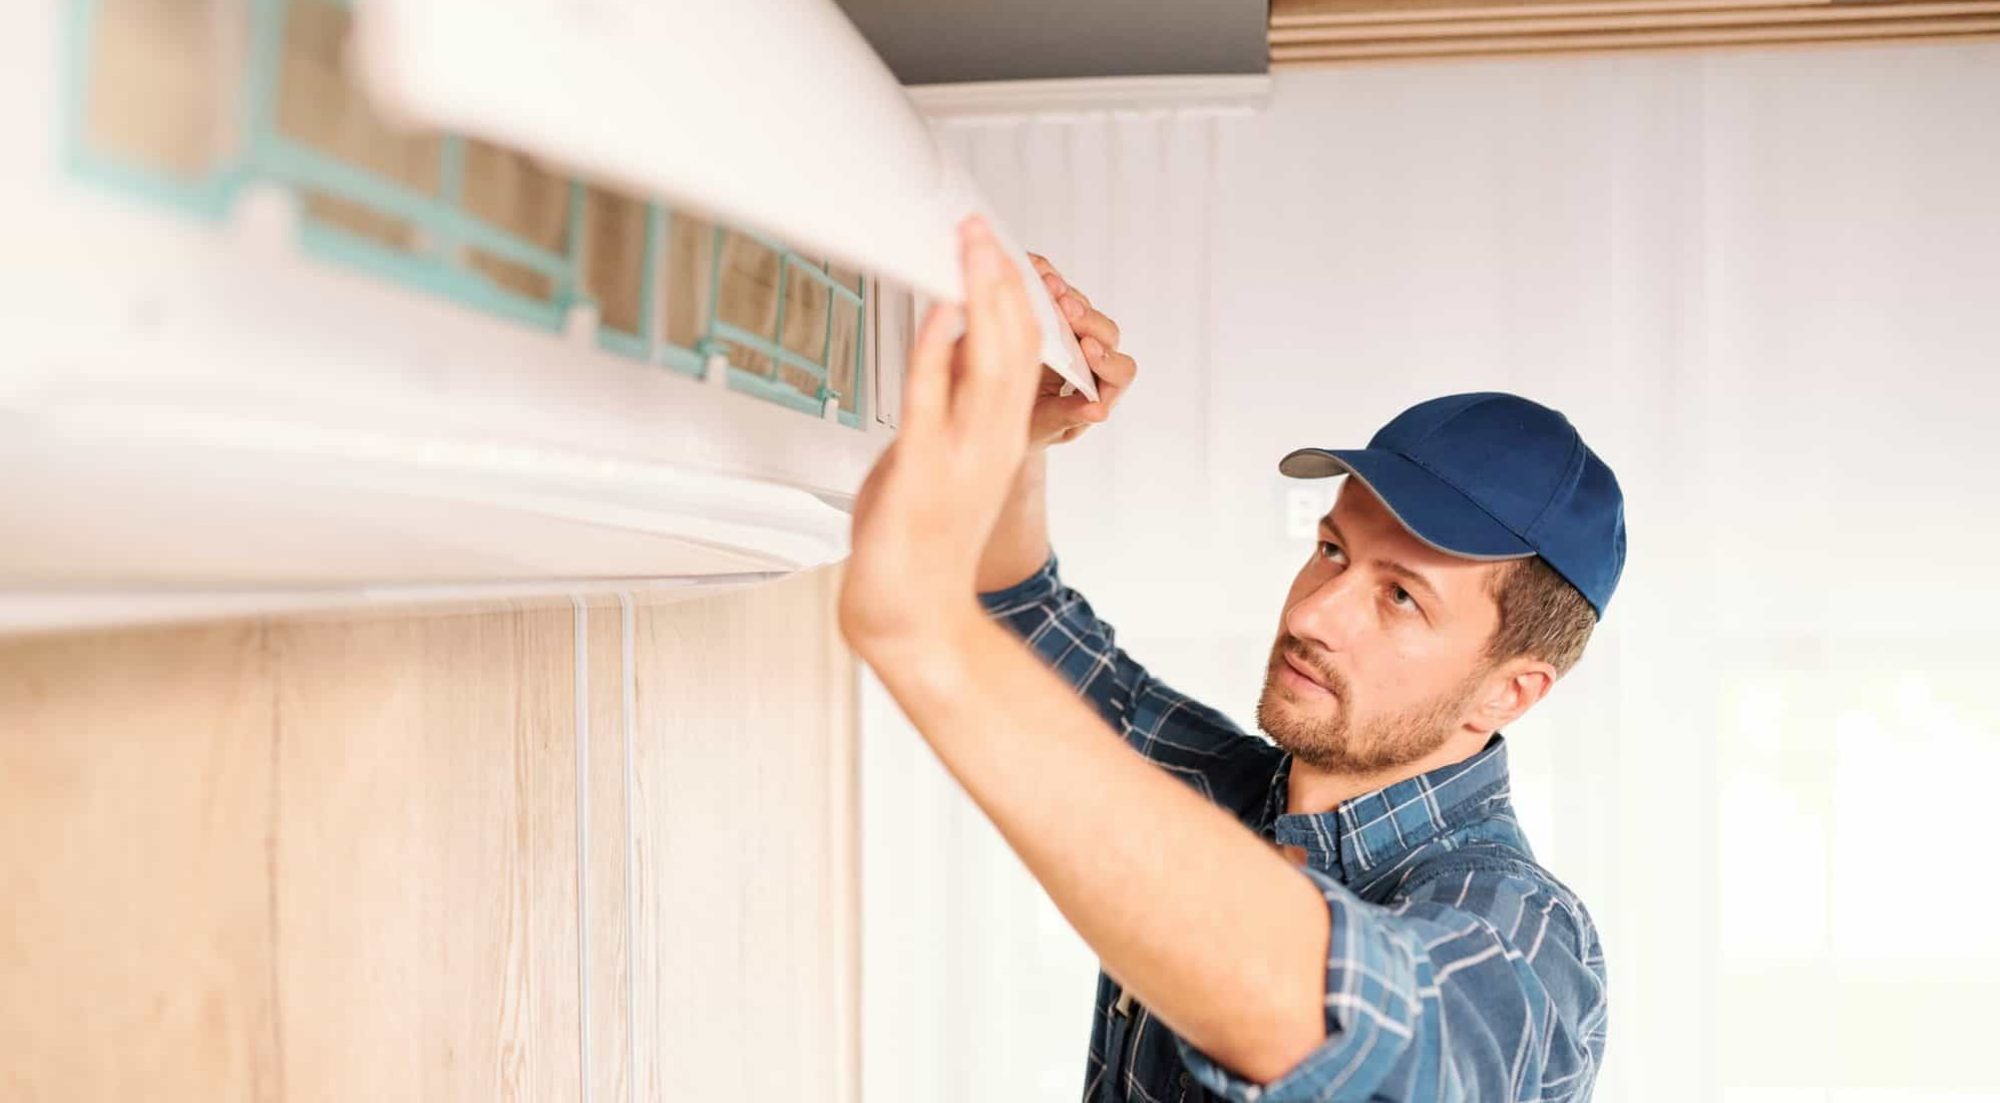 Young electrician or repiar service technician opening lid of air conditioner